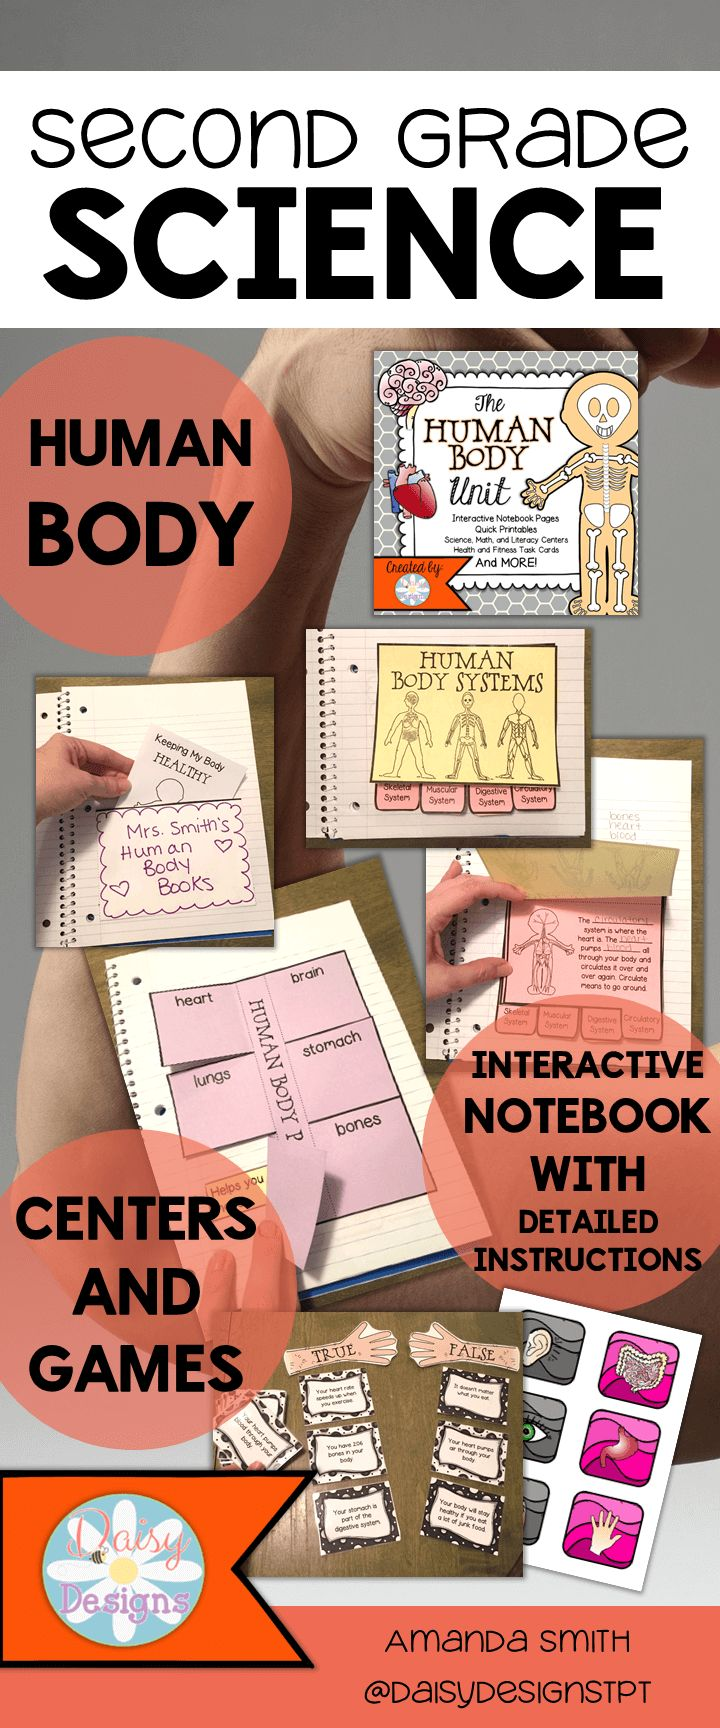 A full age-appropriate second grade science unit on the human body. Complete with interactive notebook pages, quick printables, fun games and centers, and exciting science experiments!